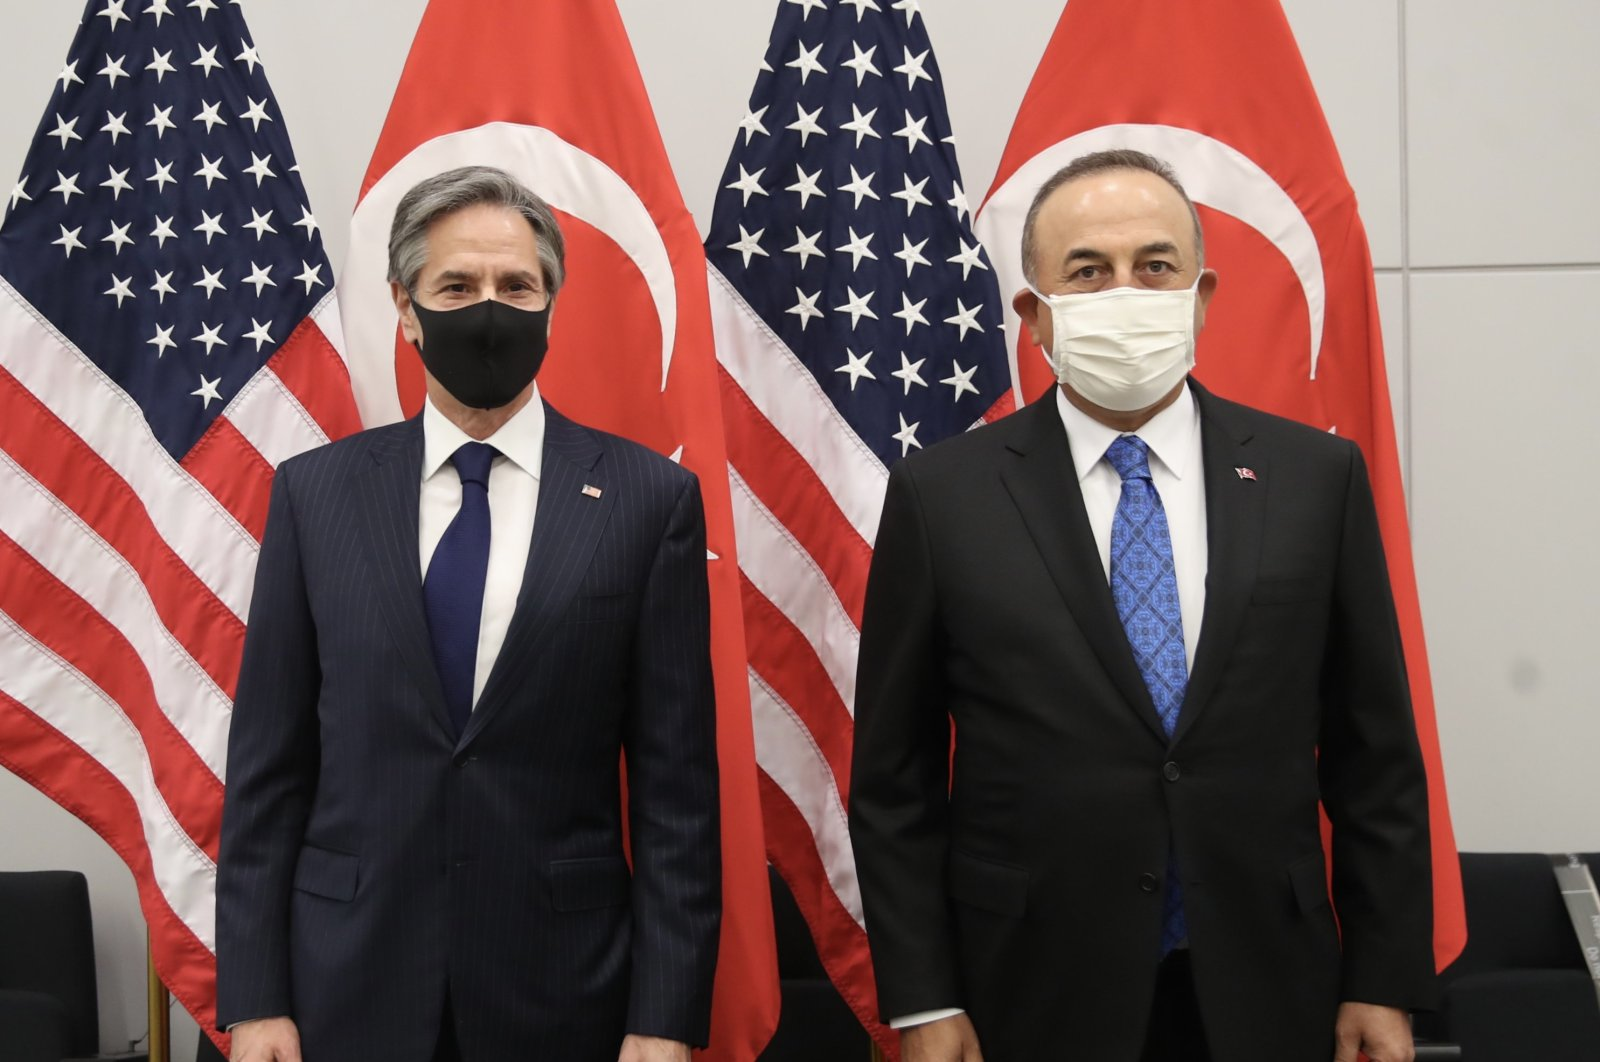 Foreign Minister Mevlüt Çavuşoğlu (R) and U.S. Secretary of State Antony Blinken at the NATO foreign ministers meeting in Brussels, March 25, 2021. (AA Photo)